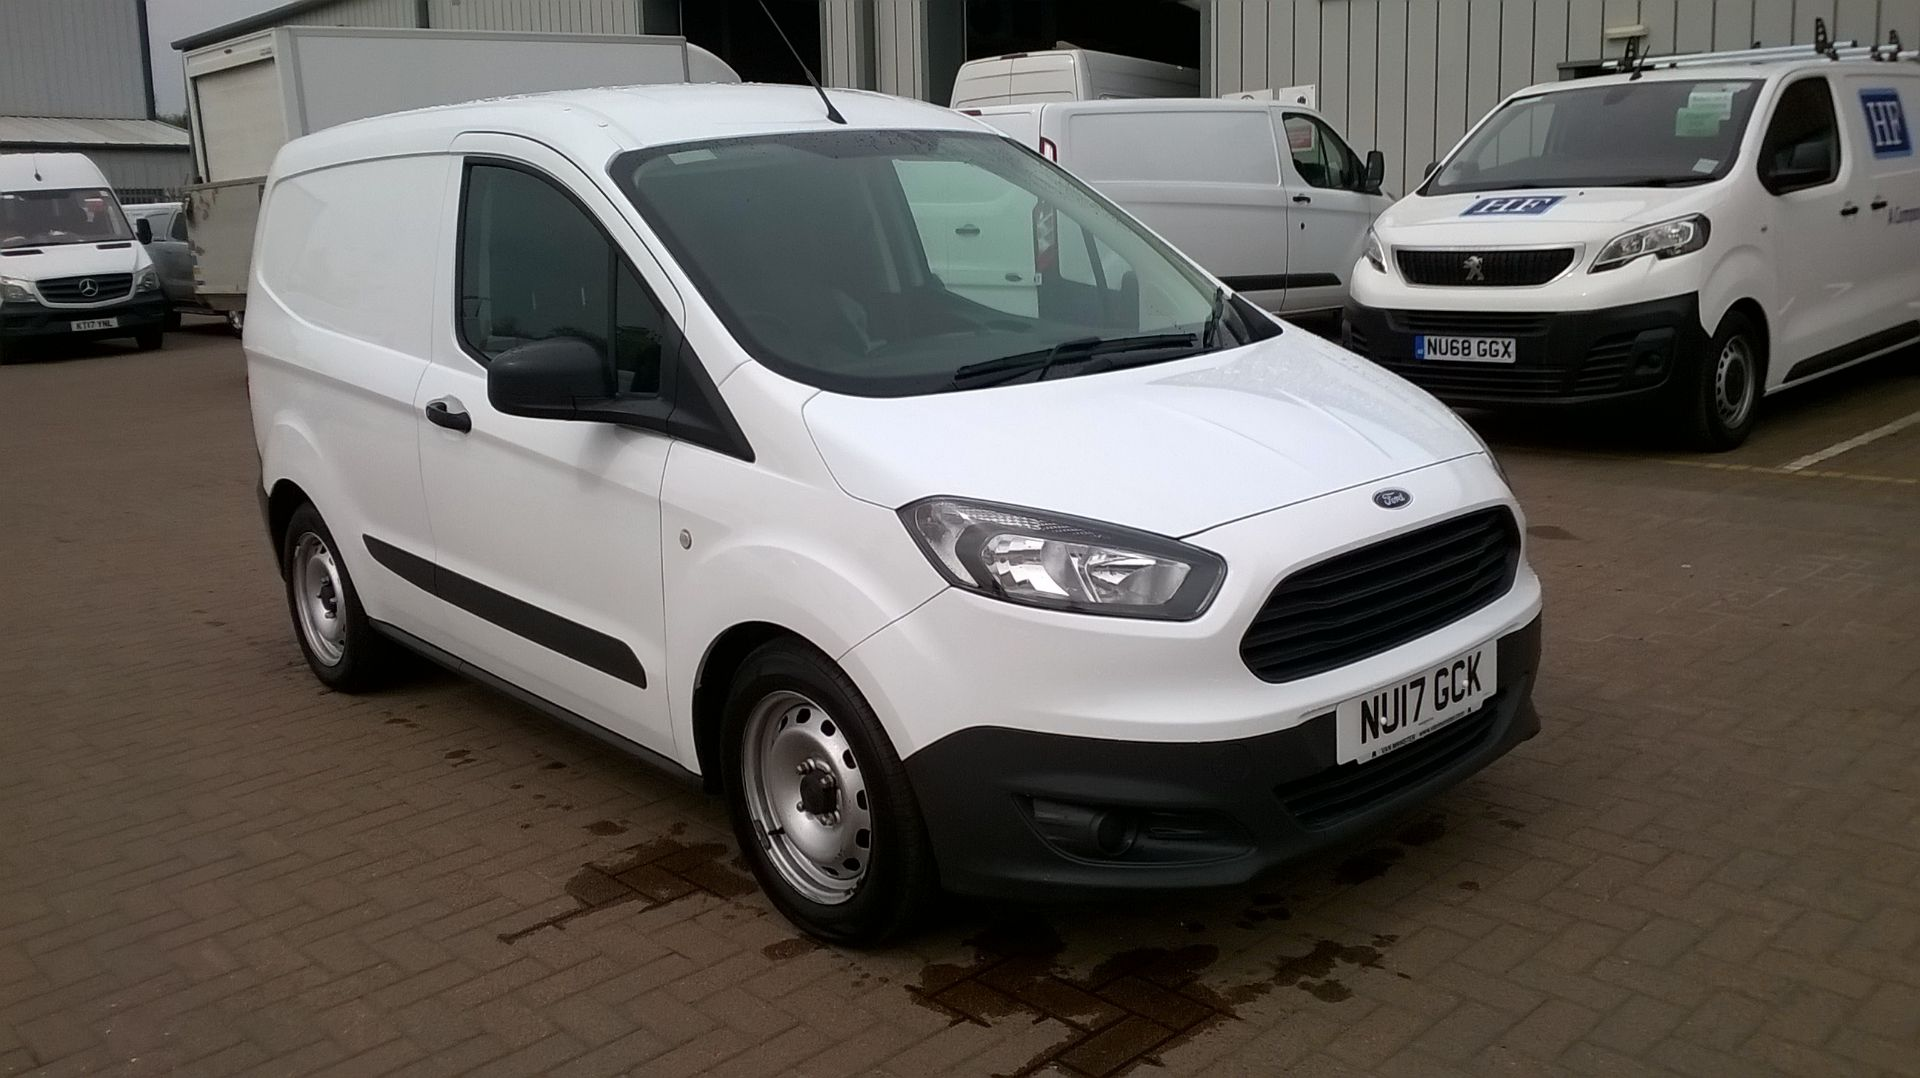 2017 Ford Transit Courier 1.5 TDCI EURO 6 (NU17GCK)